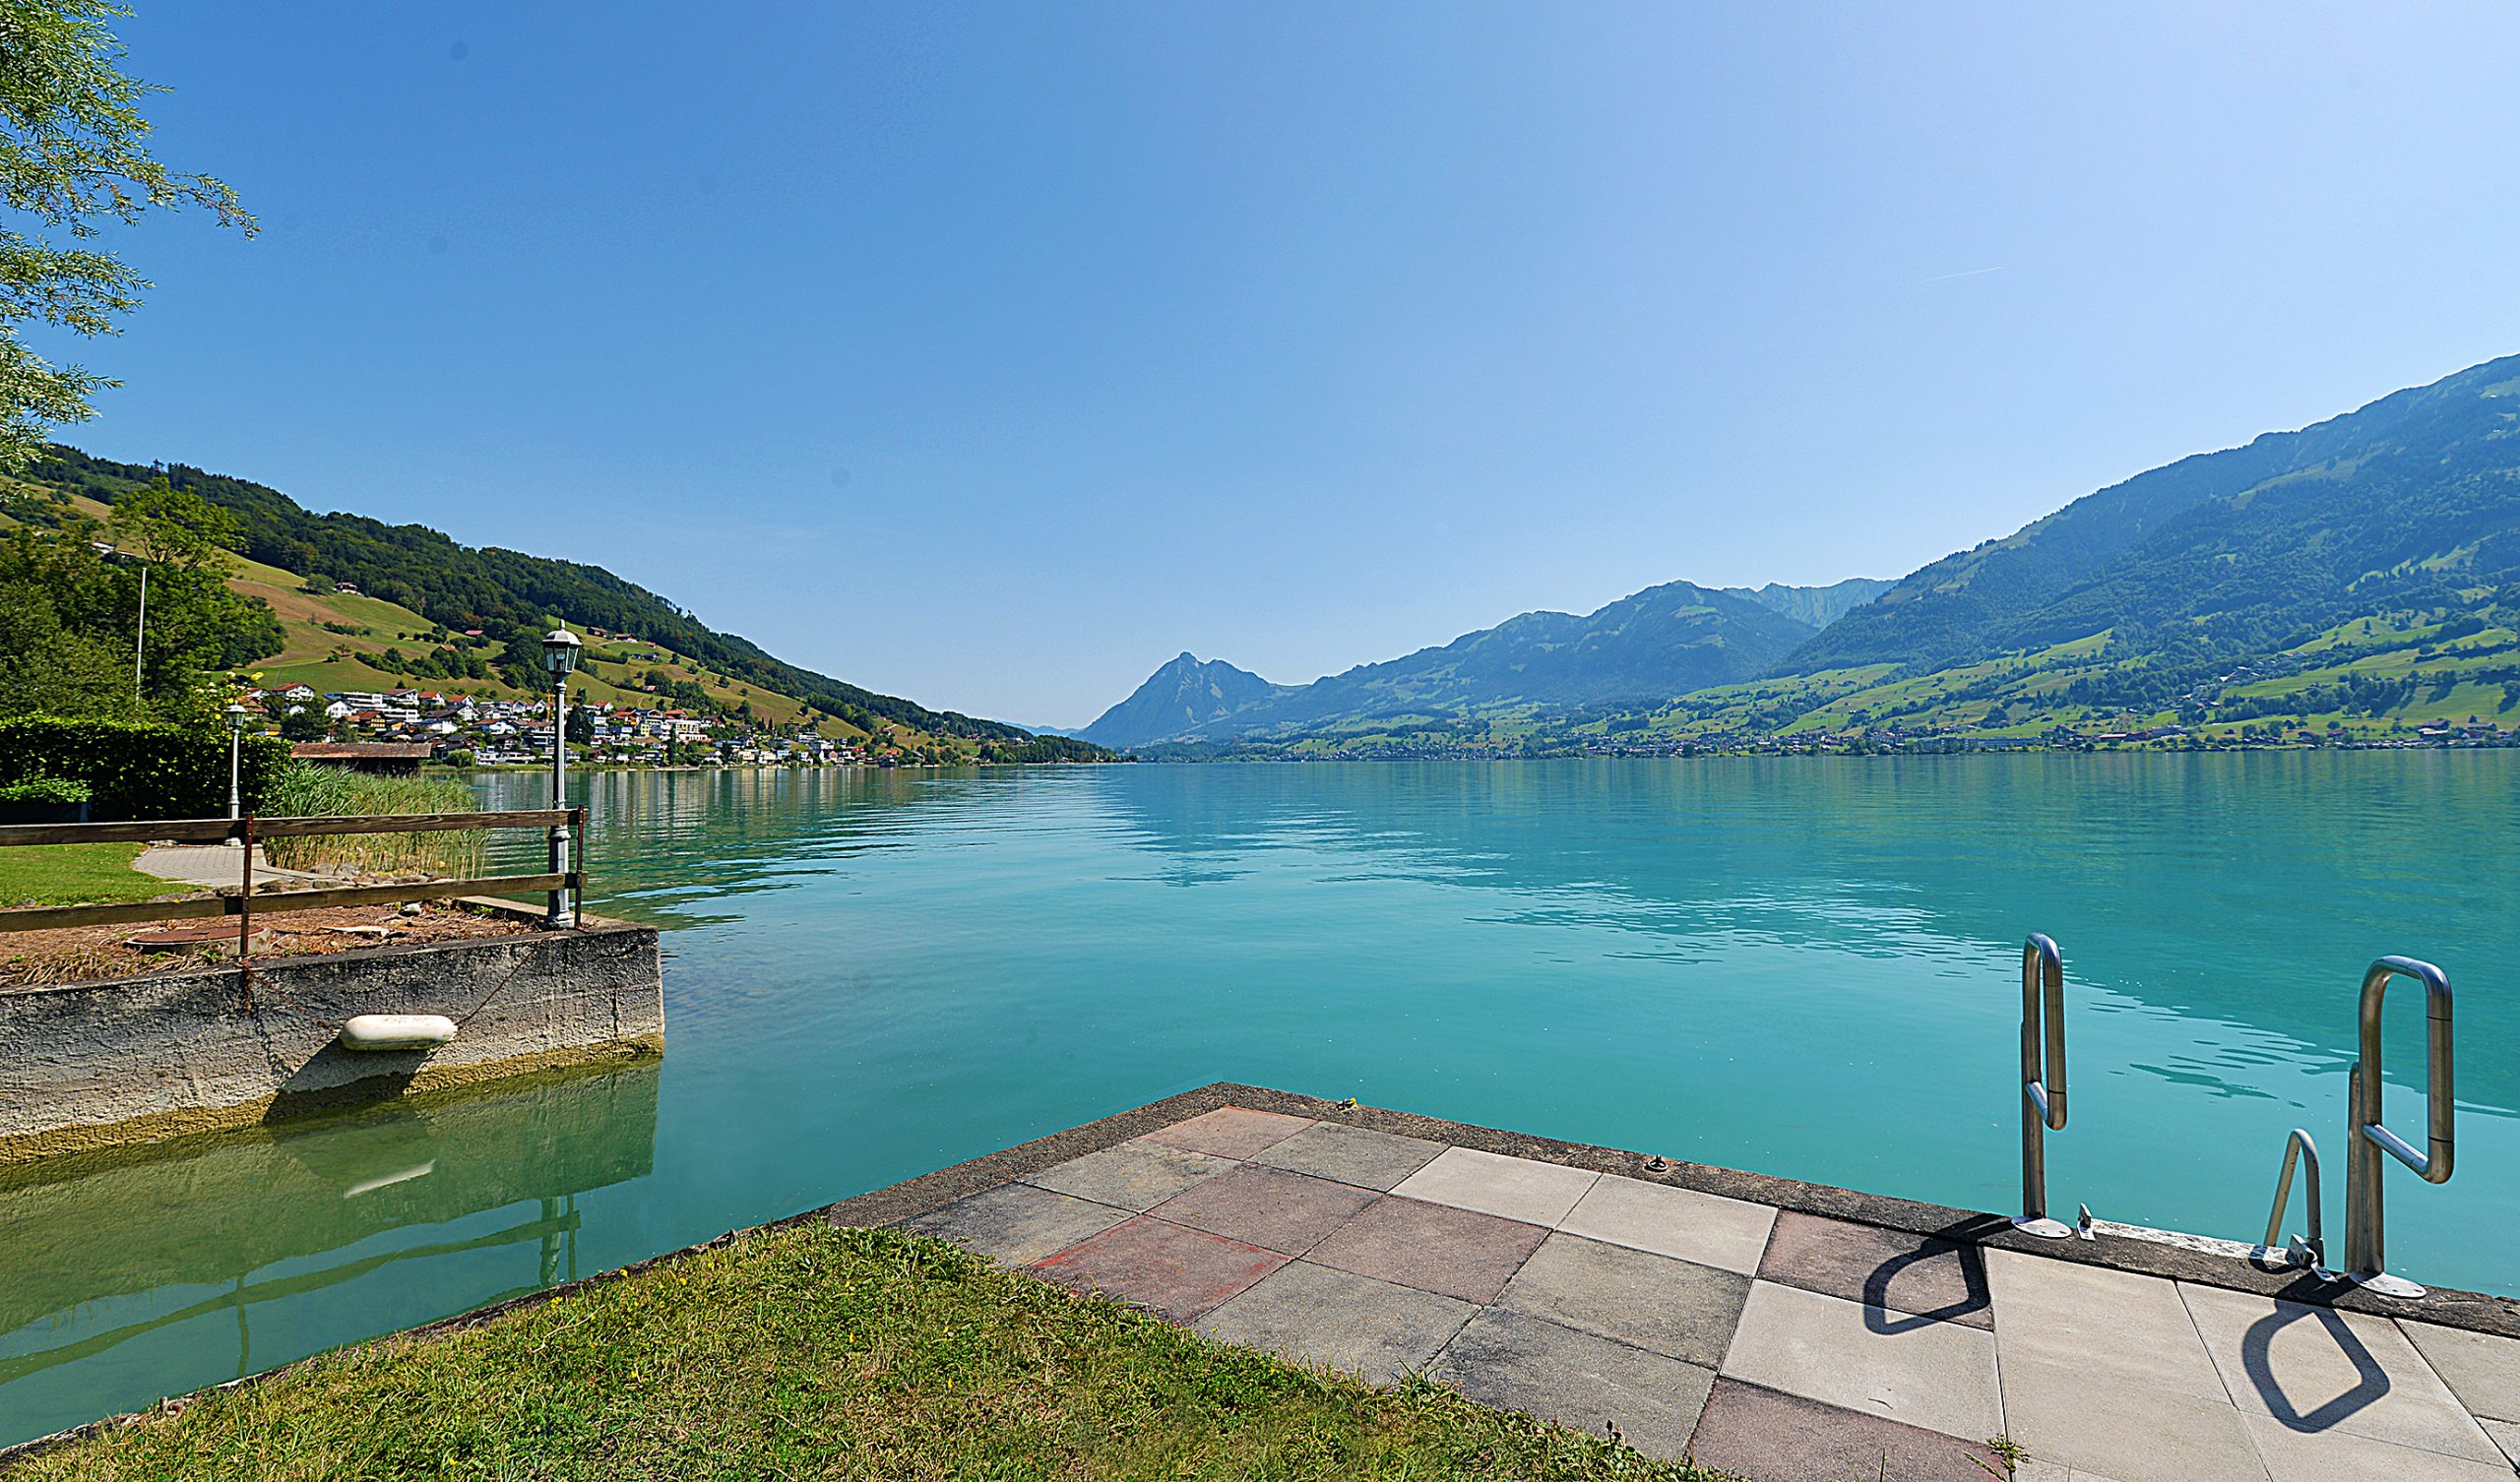 Ferienchâlet am Sarnersee